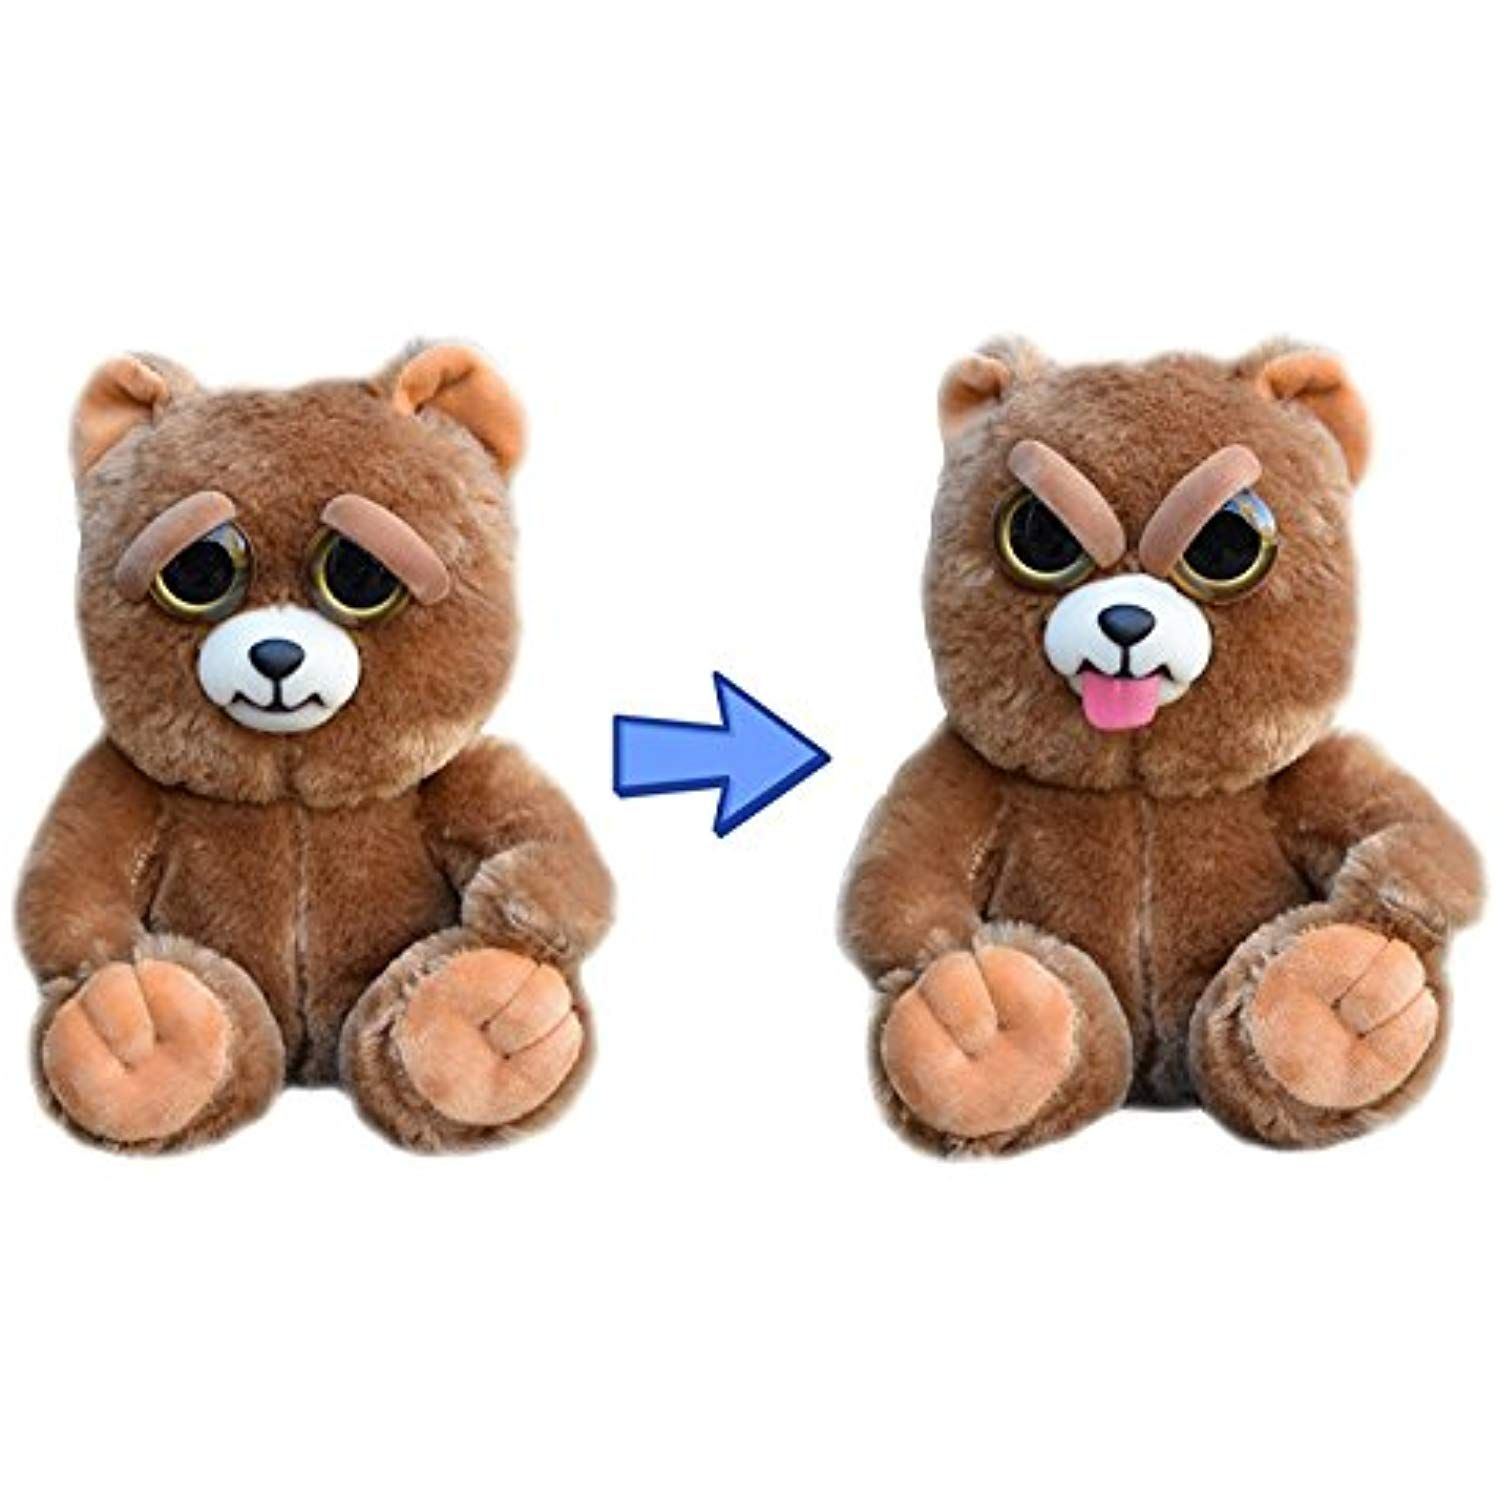 Feisty Pets Expressions Silly Sir Growls A Lot The Bear Sticks His Tongue Out Learn More By Visiting The Imag Animal Plush Toys Plush Toys Animals